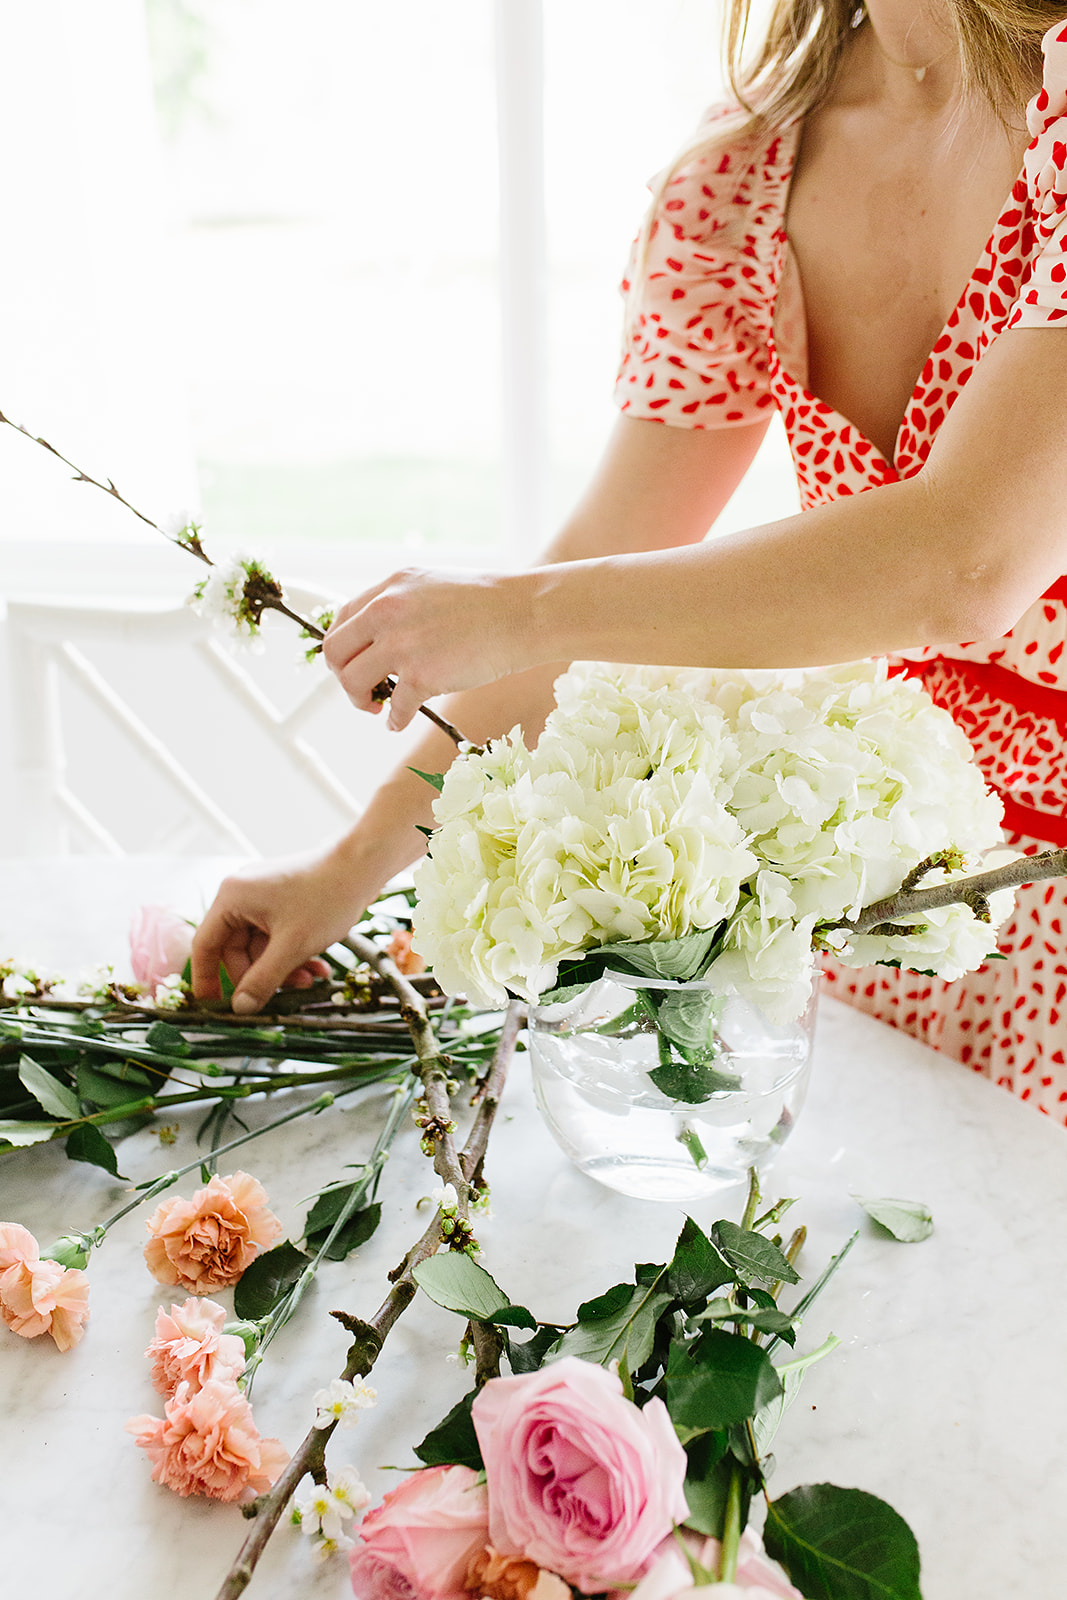 How to make your floral arrangements last longer at home by With Love From Kat